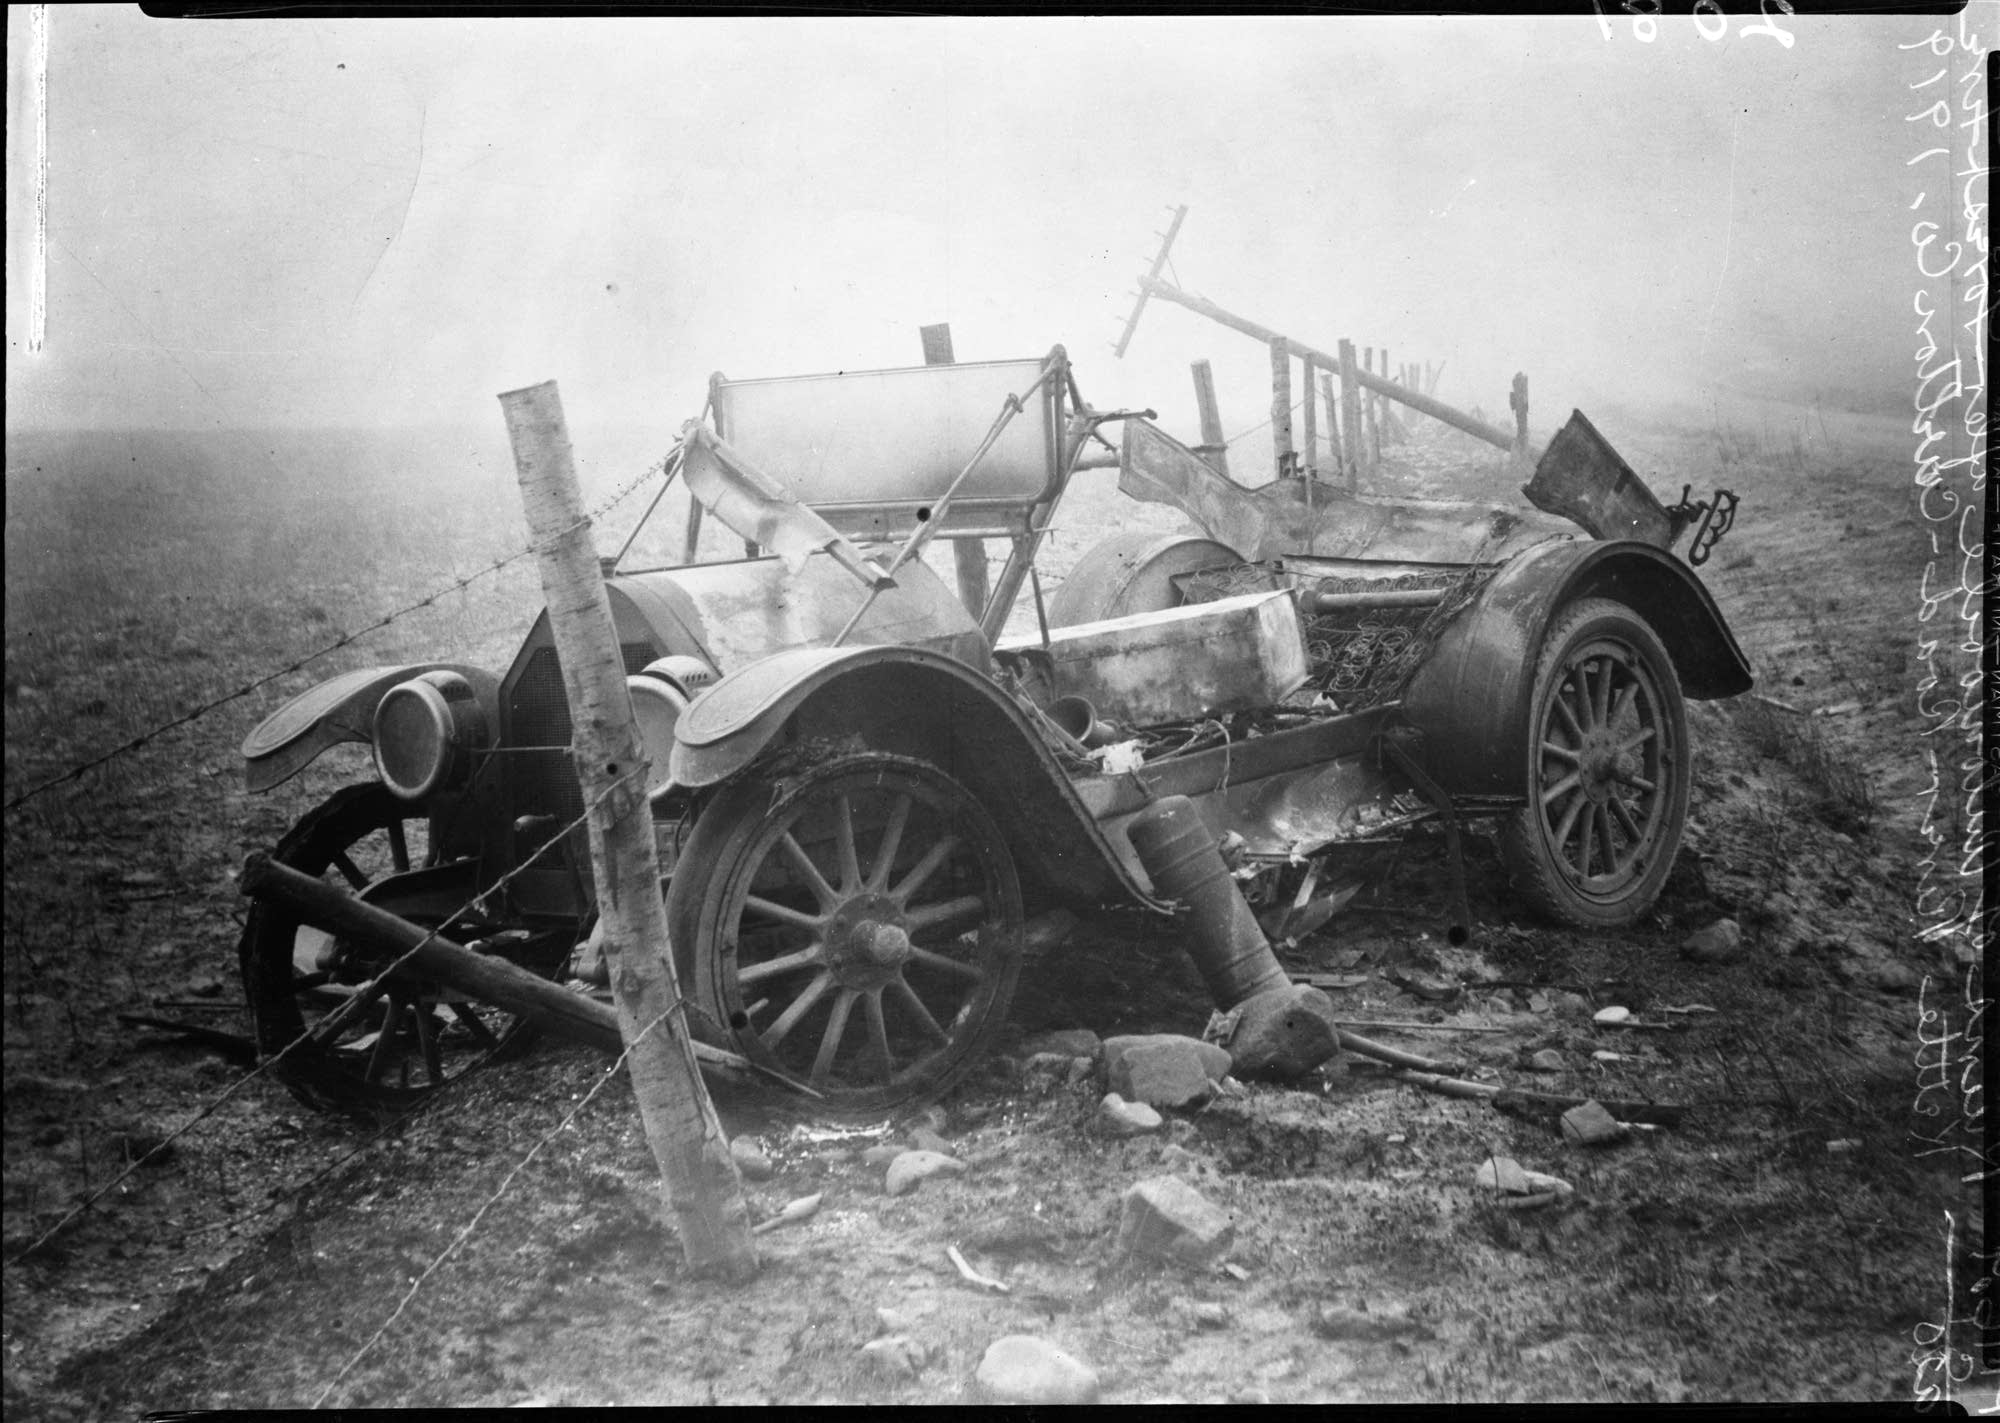 Burned cars lay in ruins along the roadsides throughout northern Minnesota.